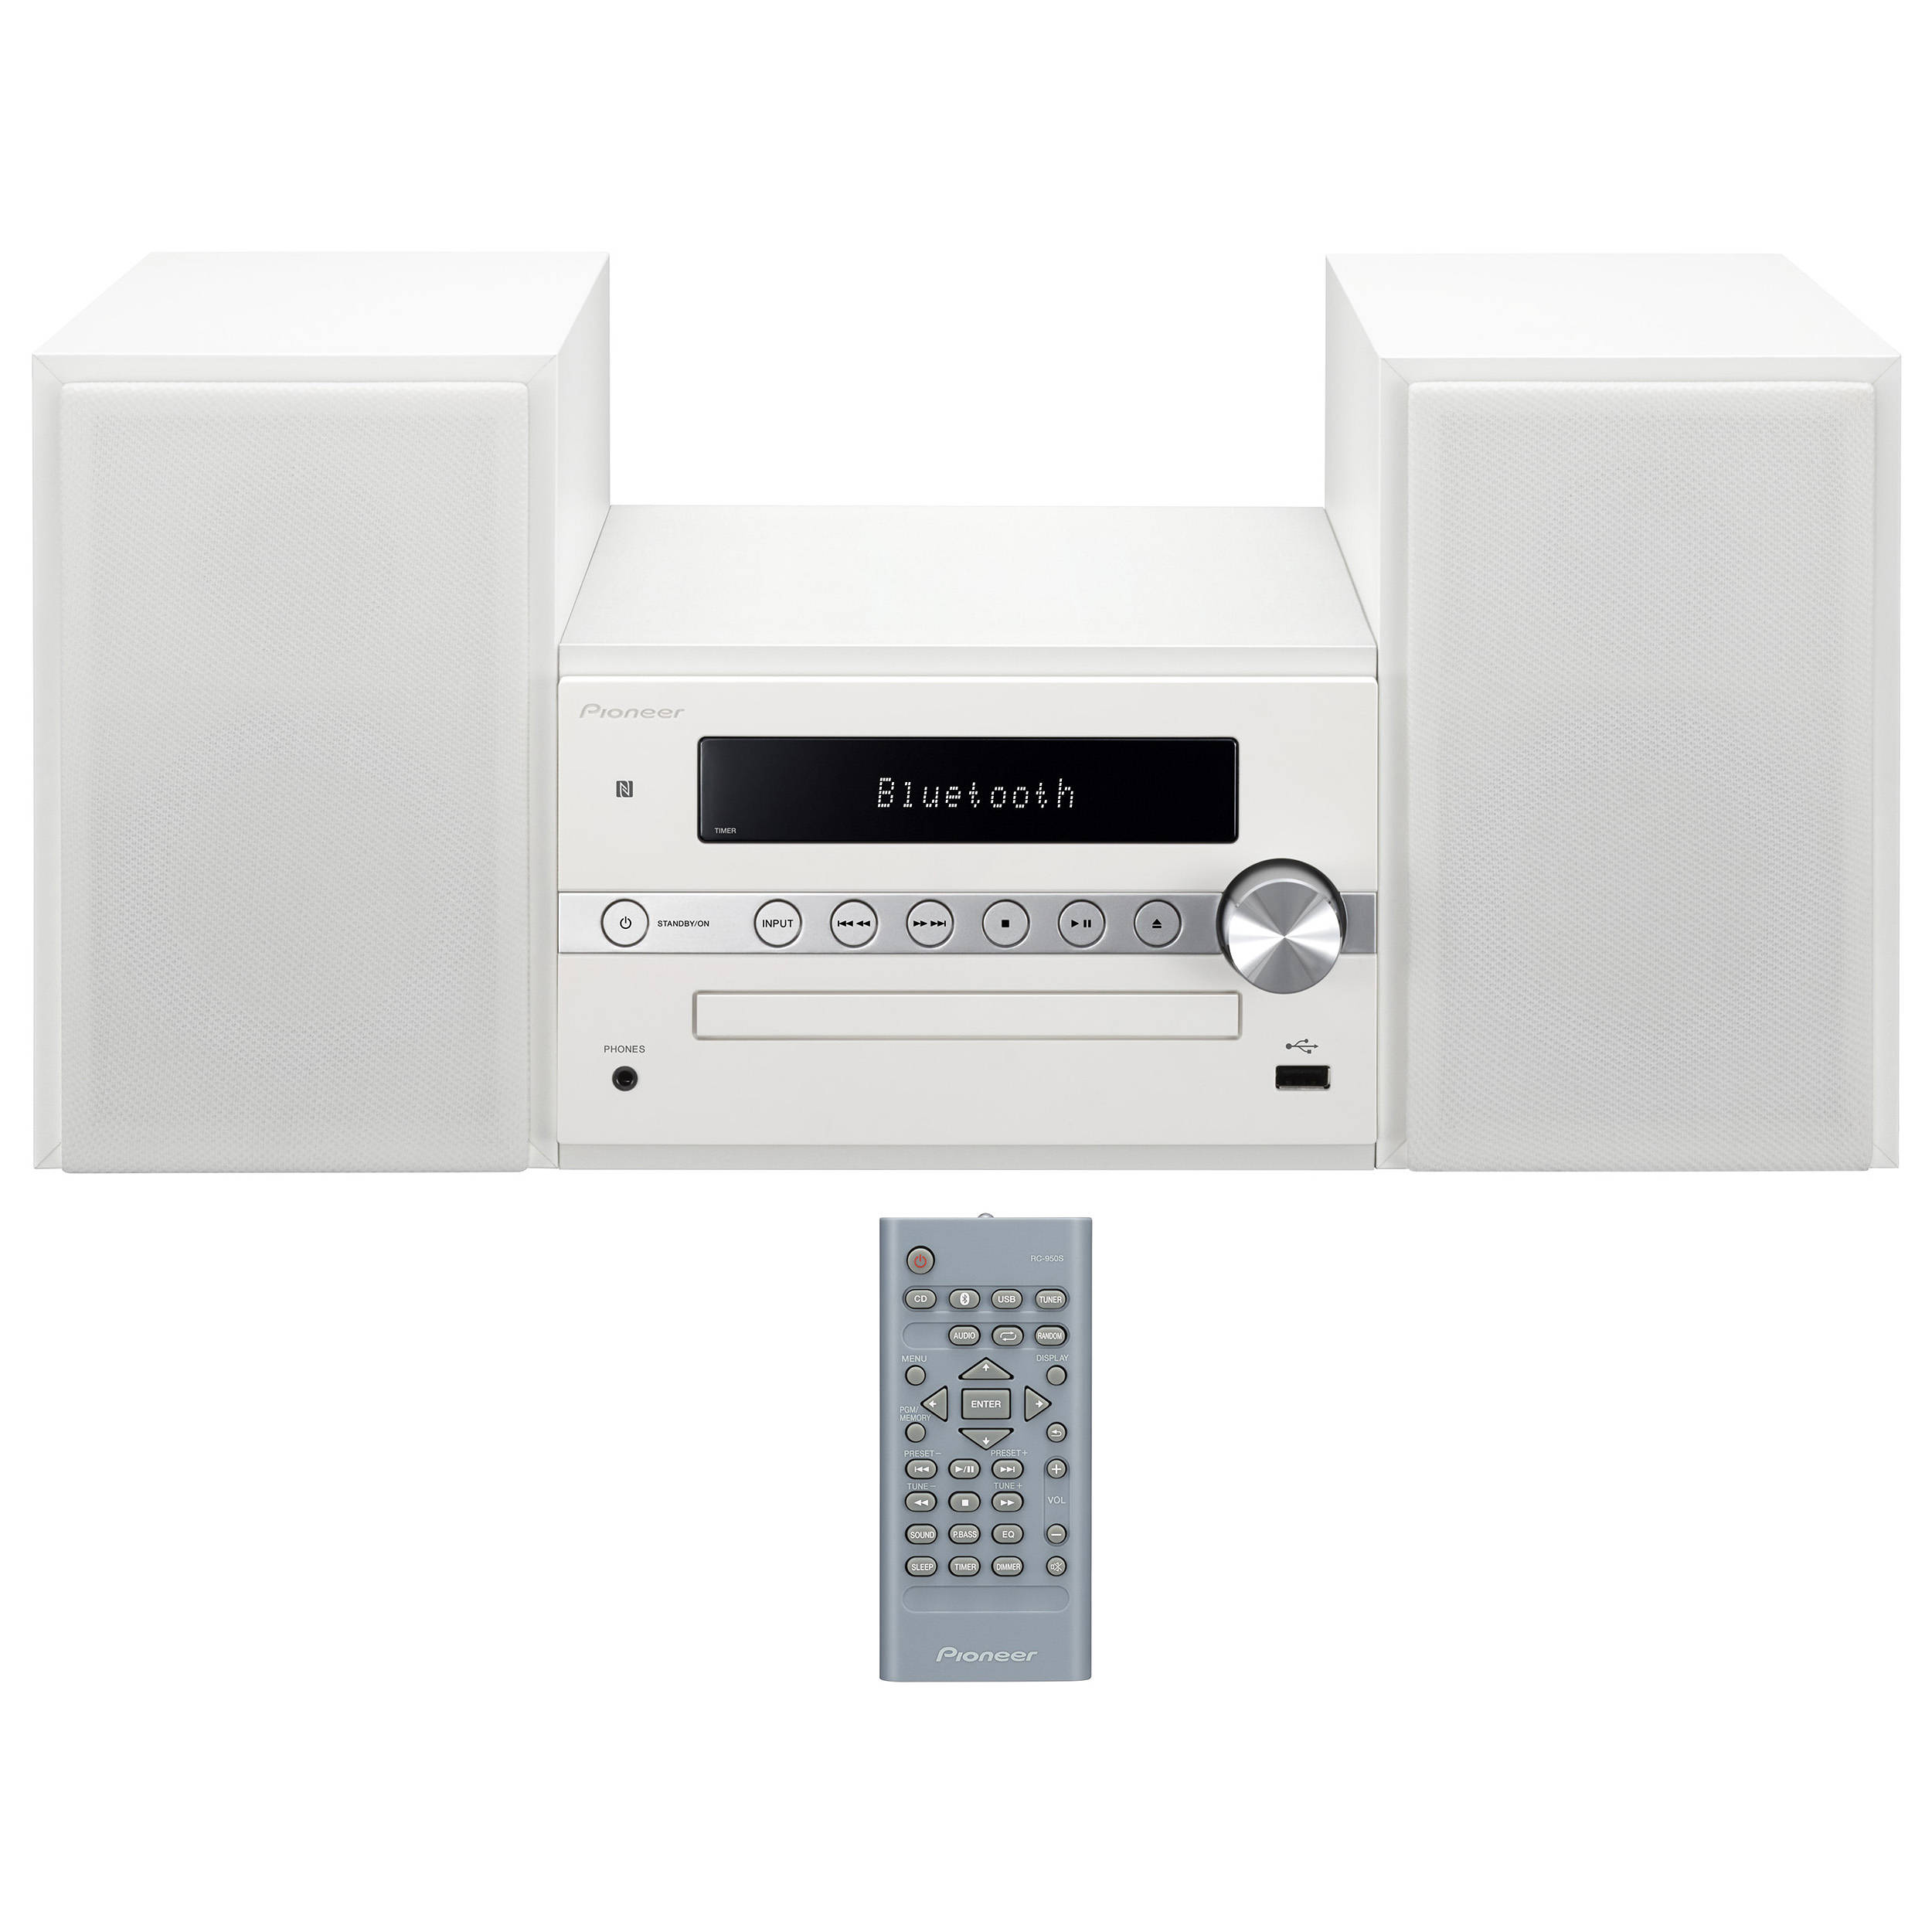 Pioneer X CM56W 30W Bluetooth Wireless Music System White